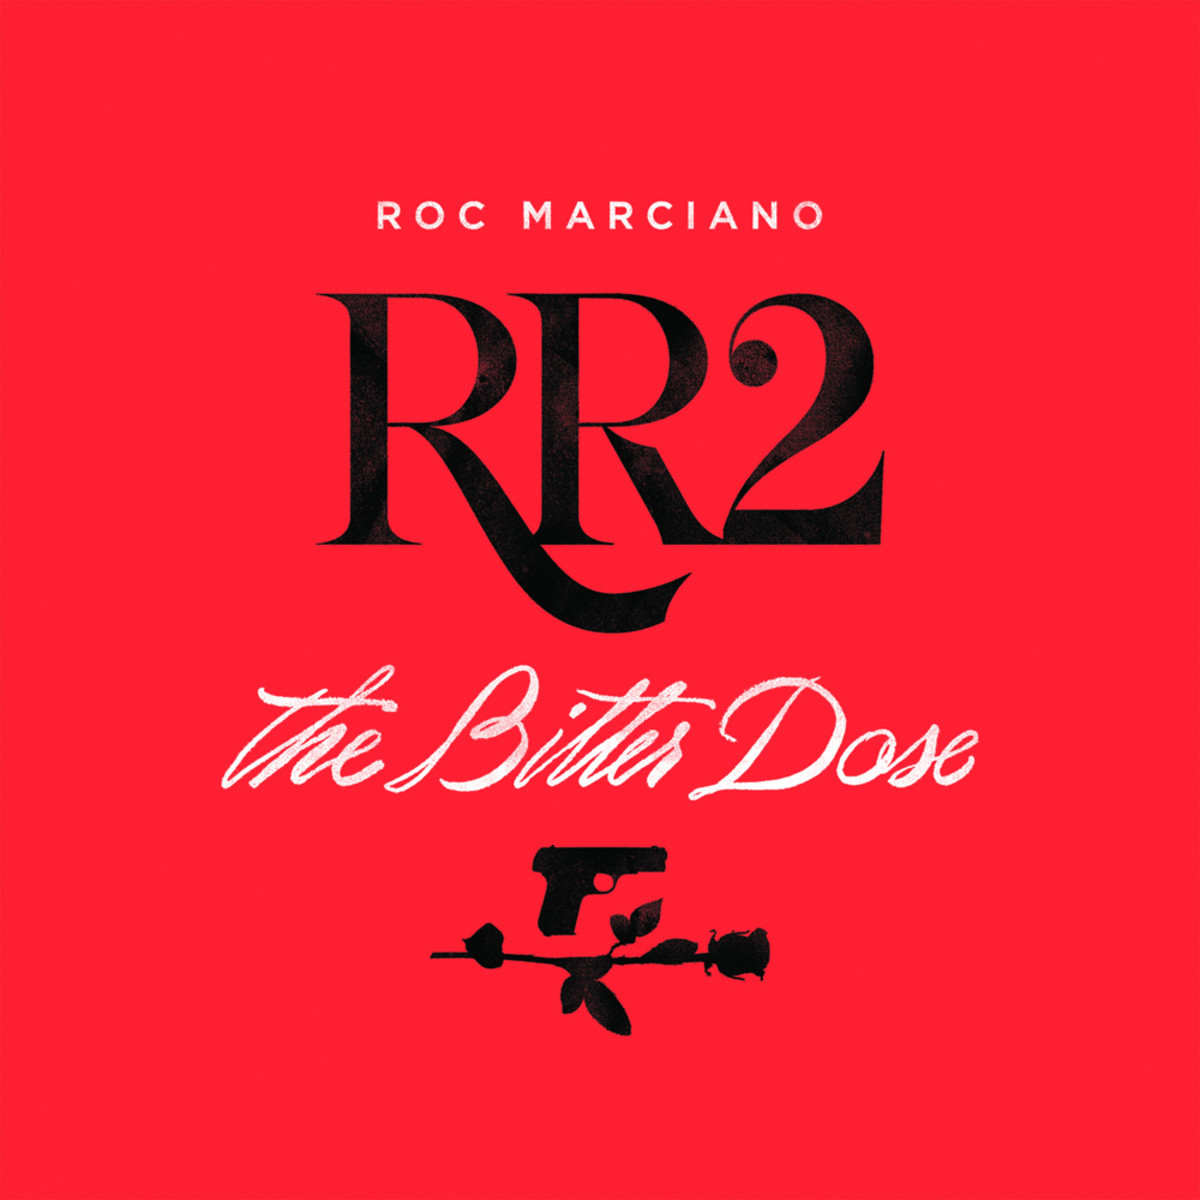 roc-marciano-rr2-album-art